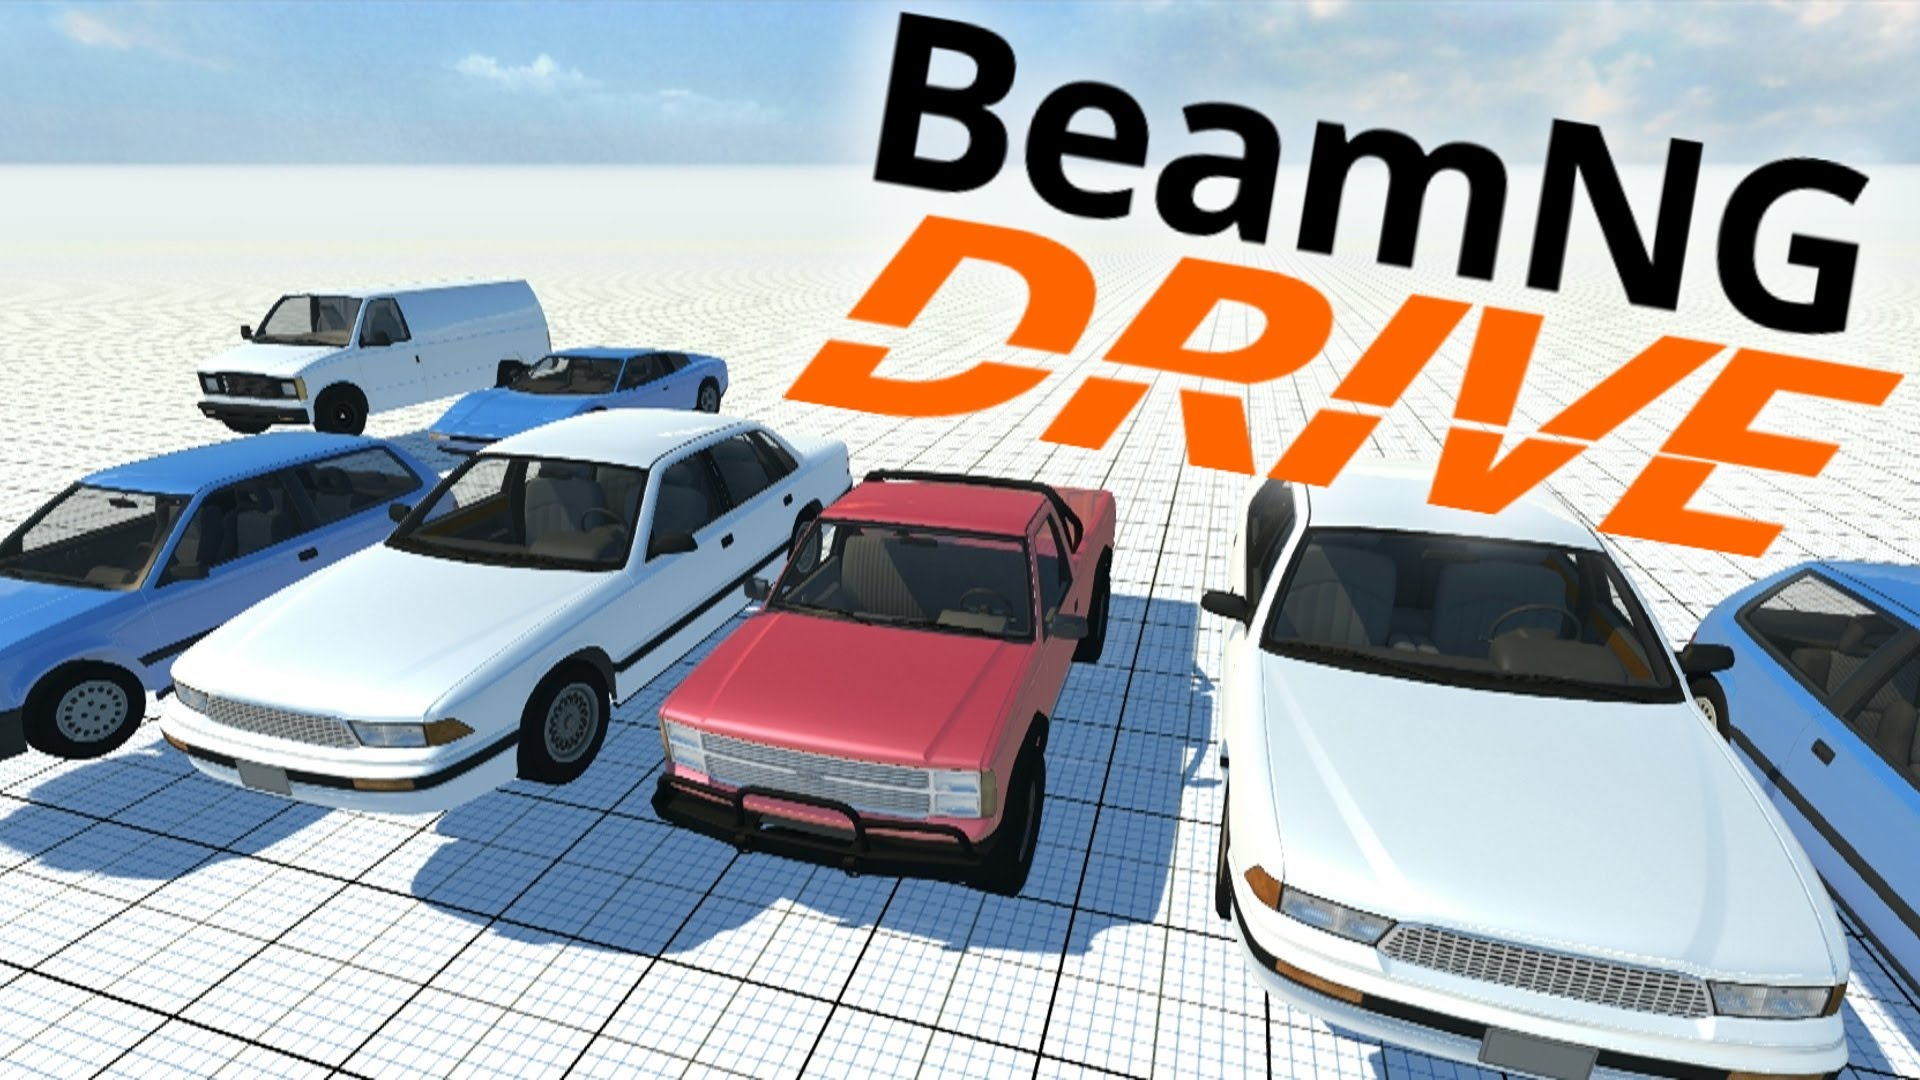 BeamNG Drive - download free full version game with the key